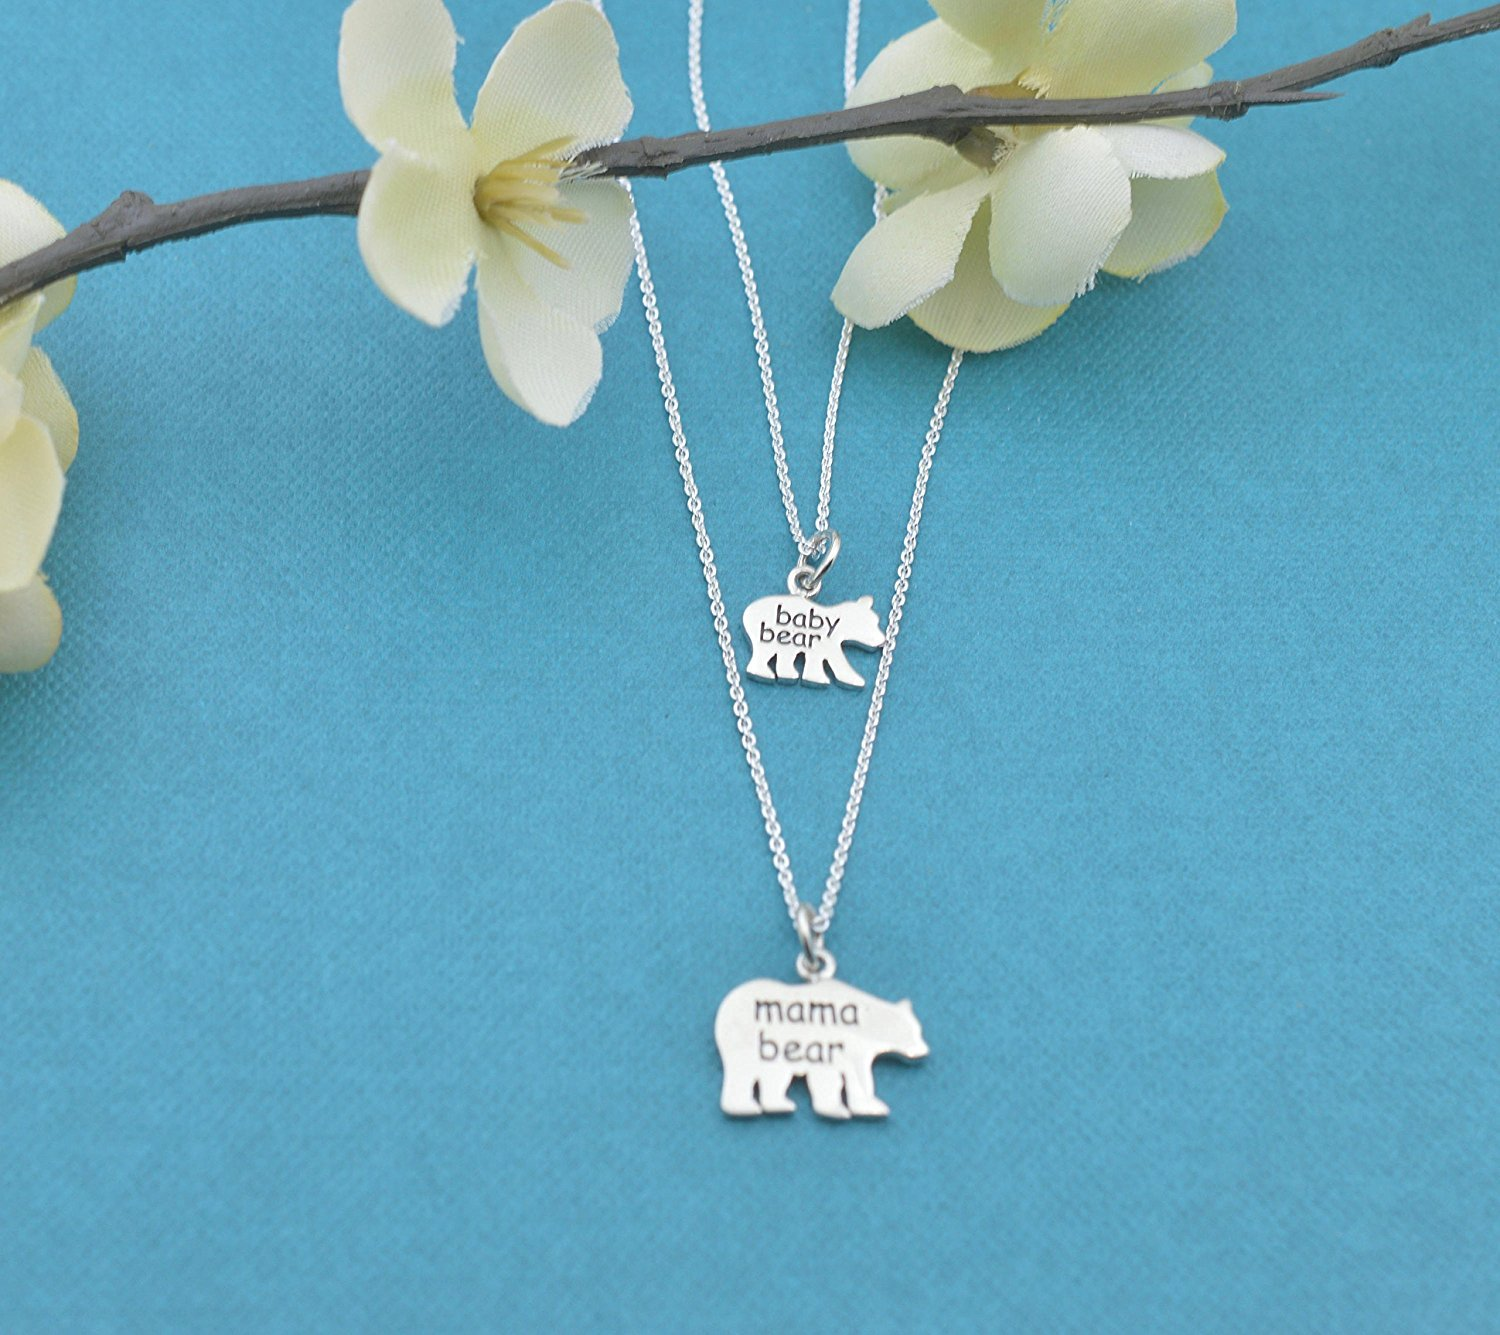 Mama Bear /& Baby Bear Sterling Silver Mother//Daughter Personalized Necklaces